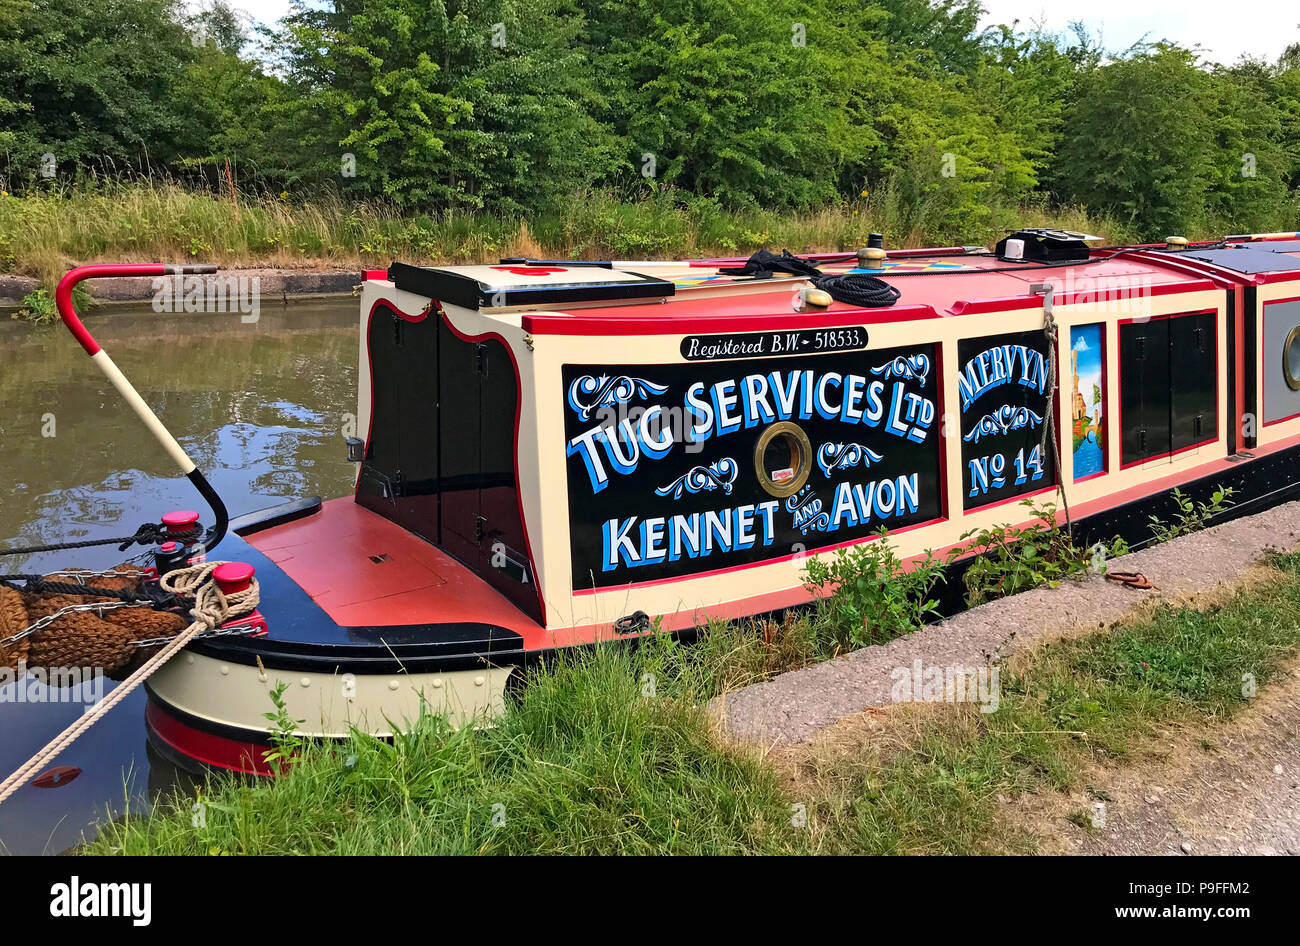 GoTonySmith,@HotpixUK,North West England,UK - Narrowboat,canals,Cheshire,Ring,UK,water,summer,tourism,tourist,Canal Anderton,Canal Northwich,tow path,towpath,Tug services,tug,services,Kennet Avon,Kennet,Avon,Mervyn,No14,No 14,No40,No 40,Bramley,Green,Green Barge,Green Narrowboat,clouds,cloud,reflection,reflections,painting,art,Anderton Lift